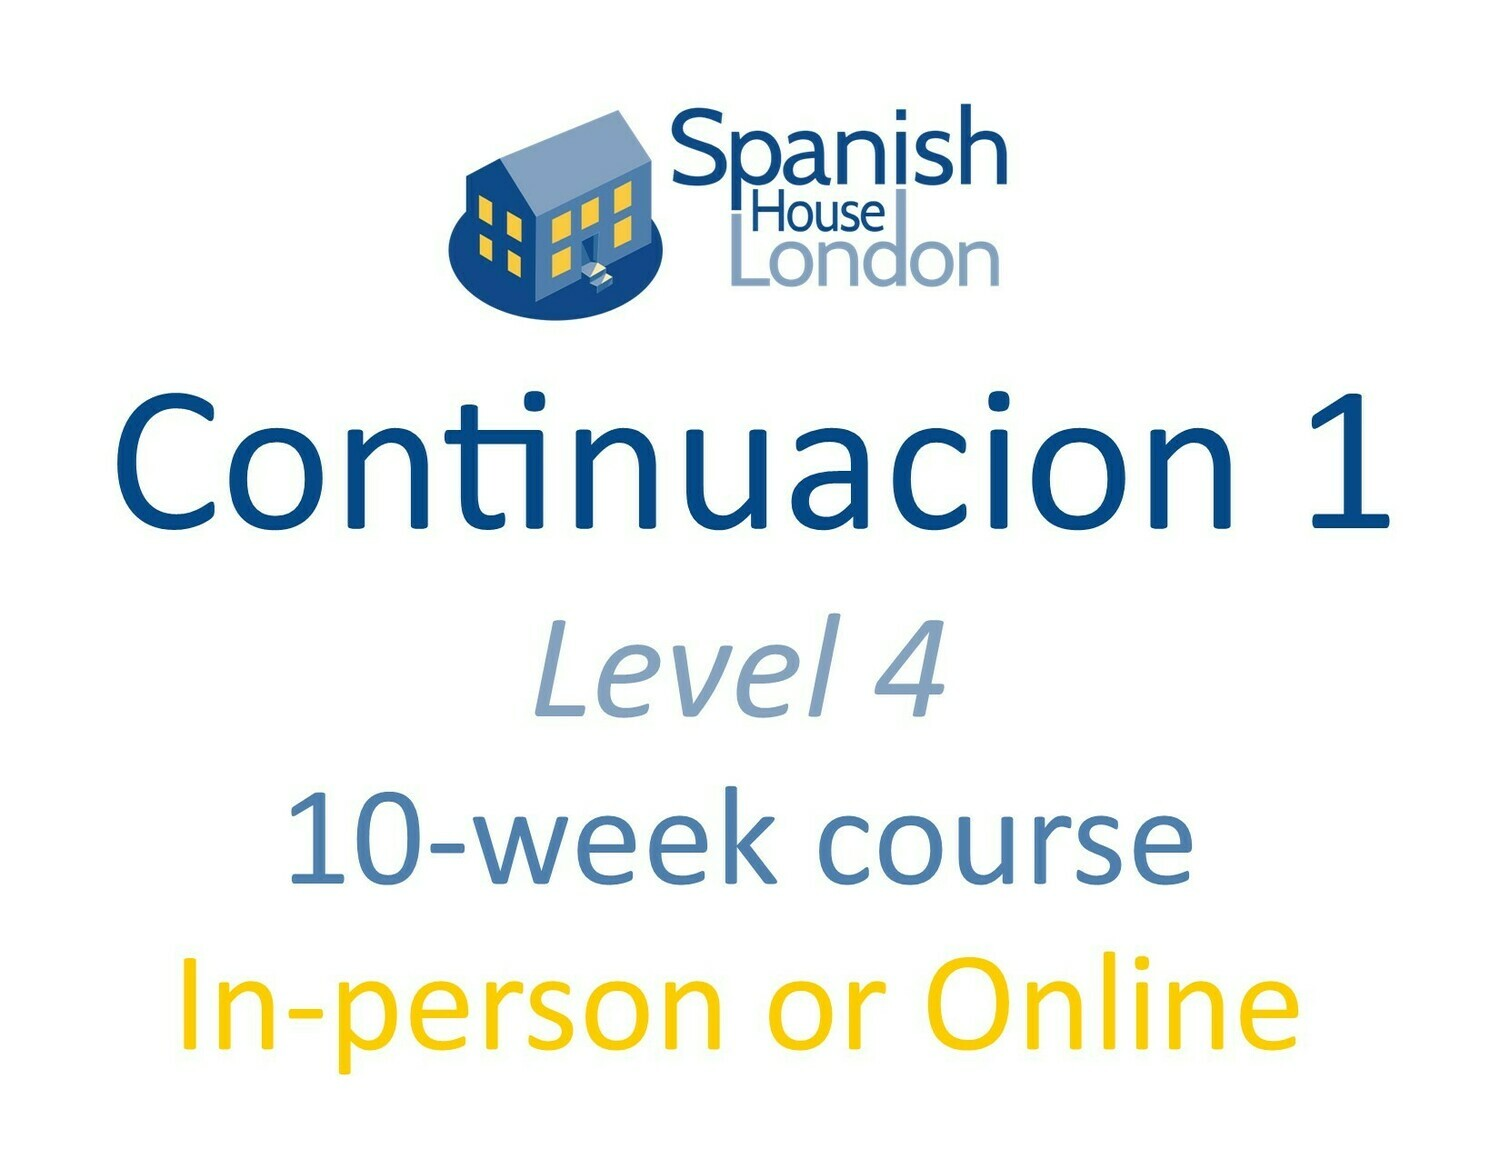 Continuacion 1 Course starting on 4th May at 6pm in Clapham North